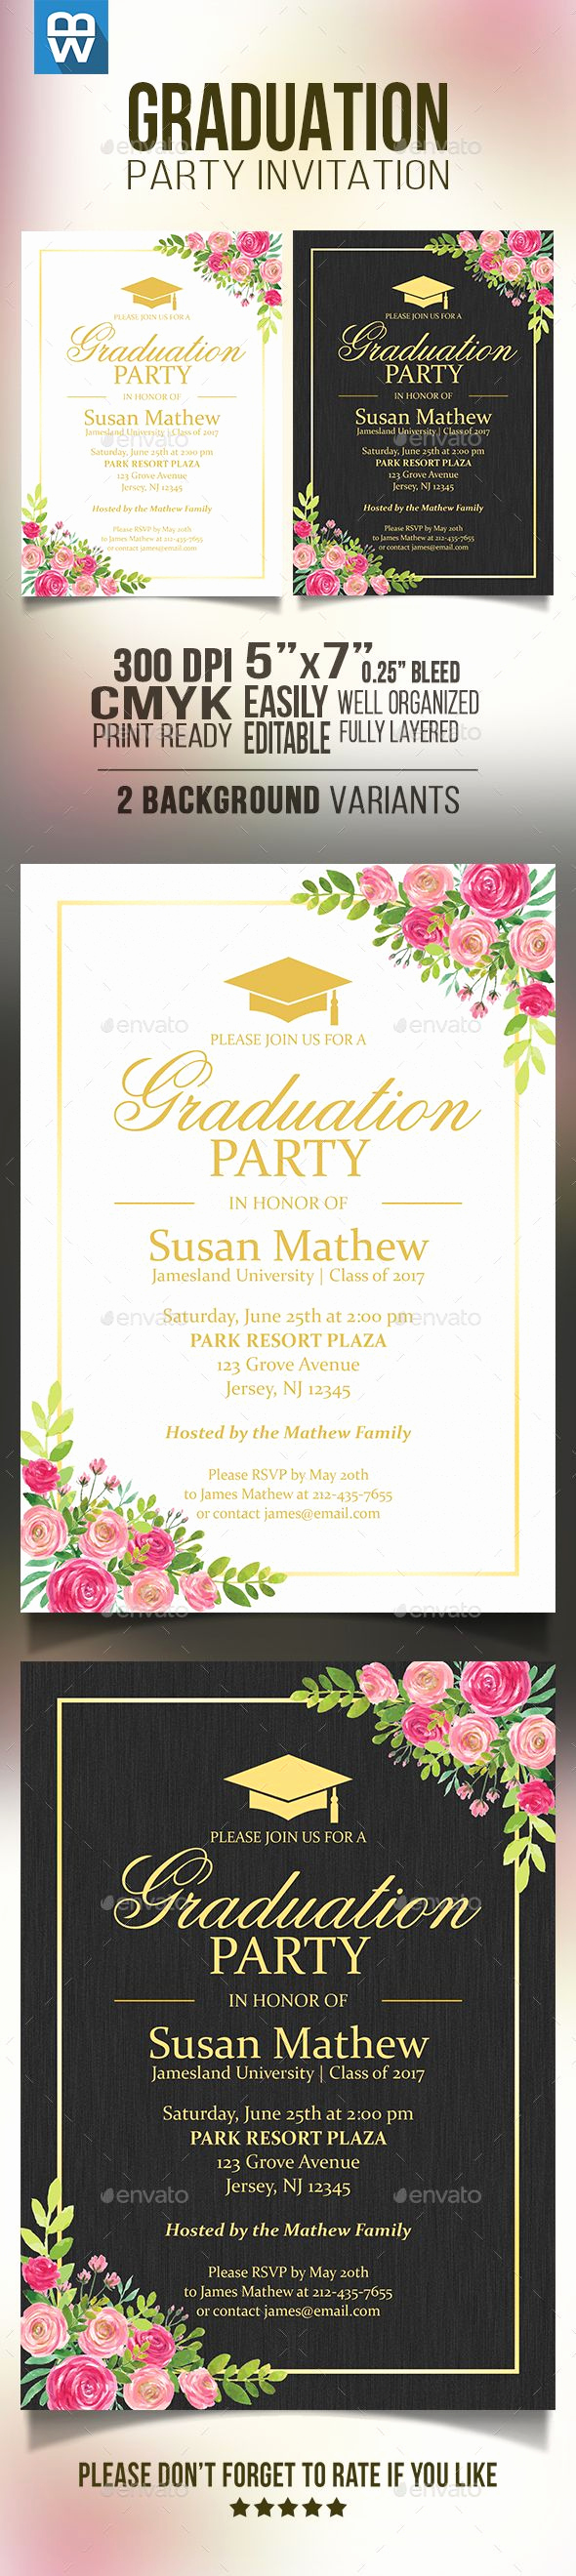 Graduation Party Invitation Template Free Luxury 25 Unique Invitation Templates Ideas On Pinterest